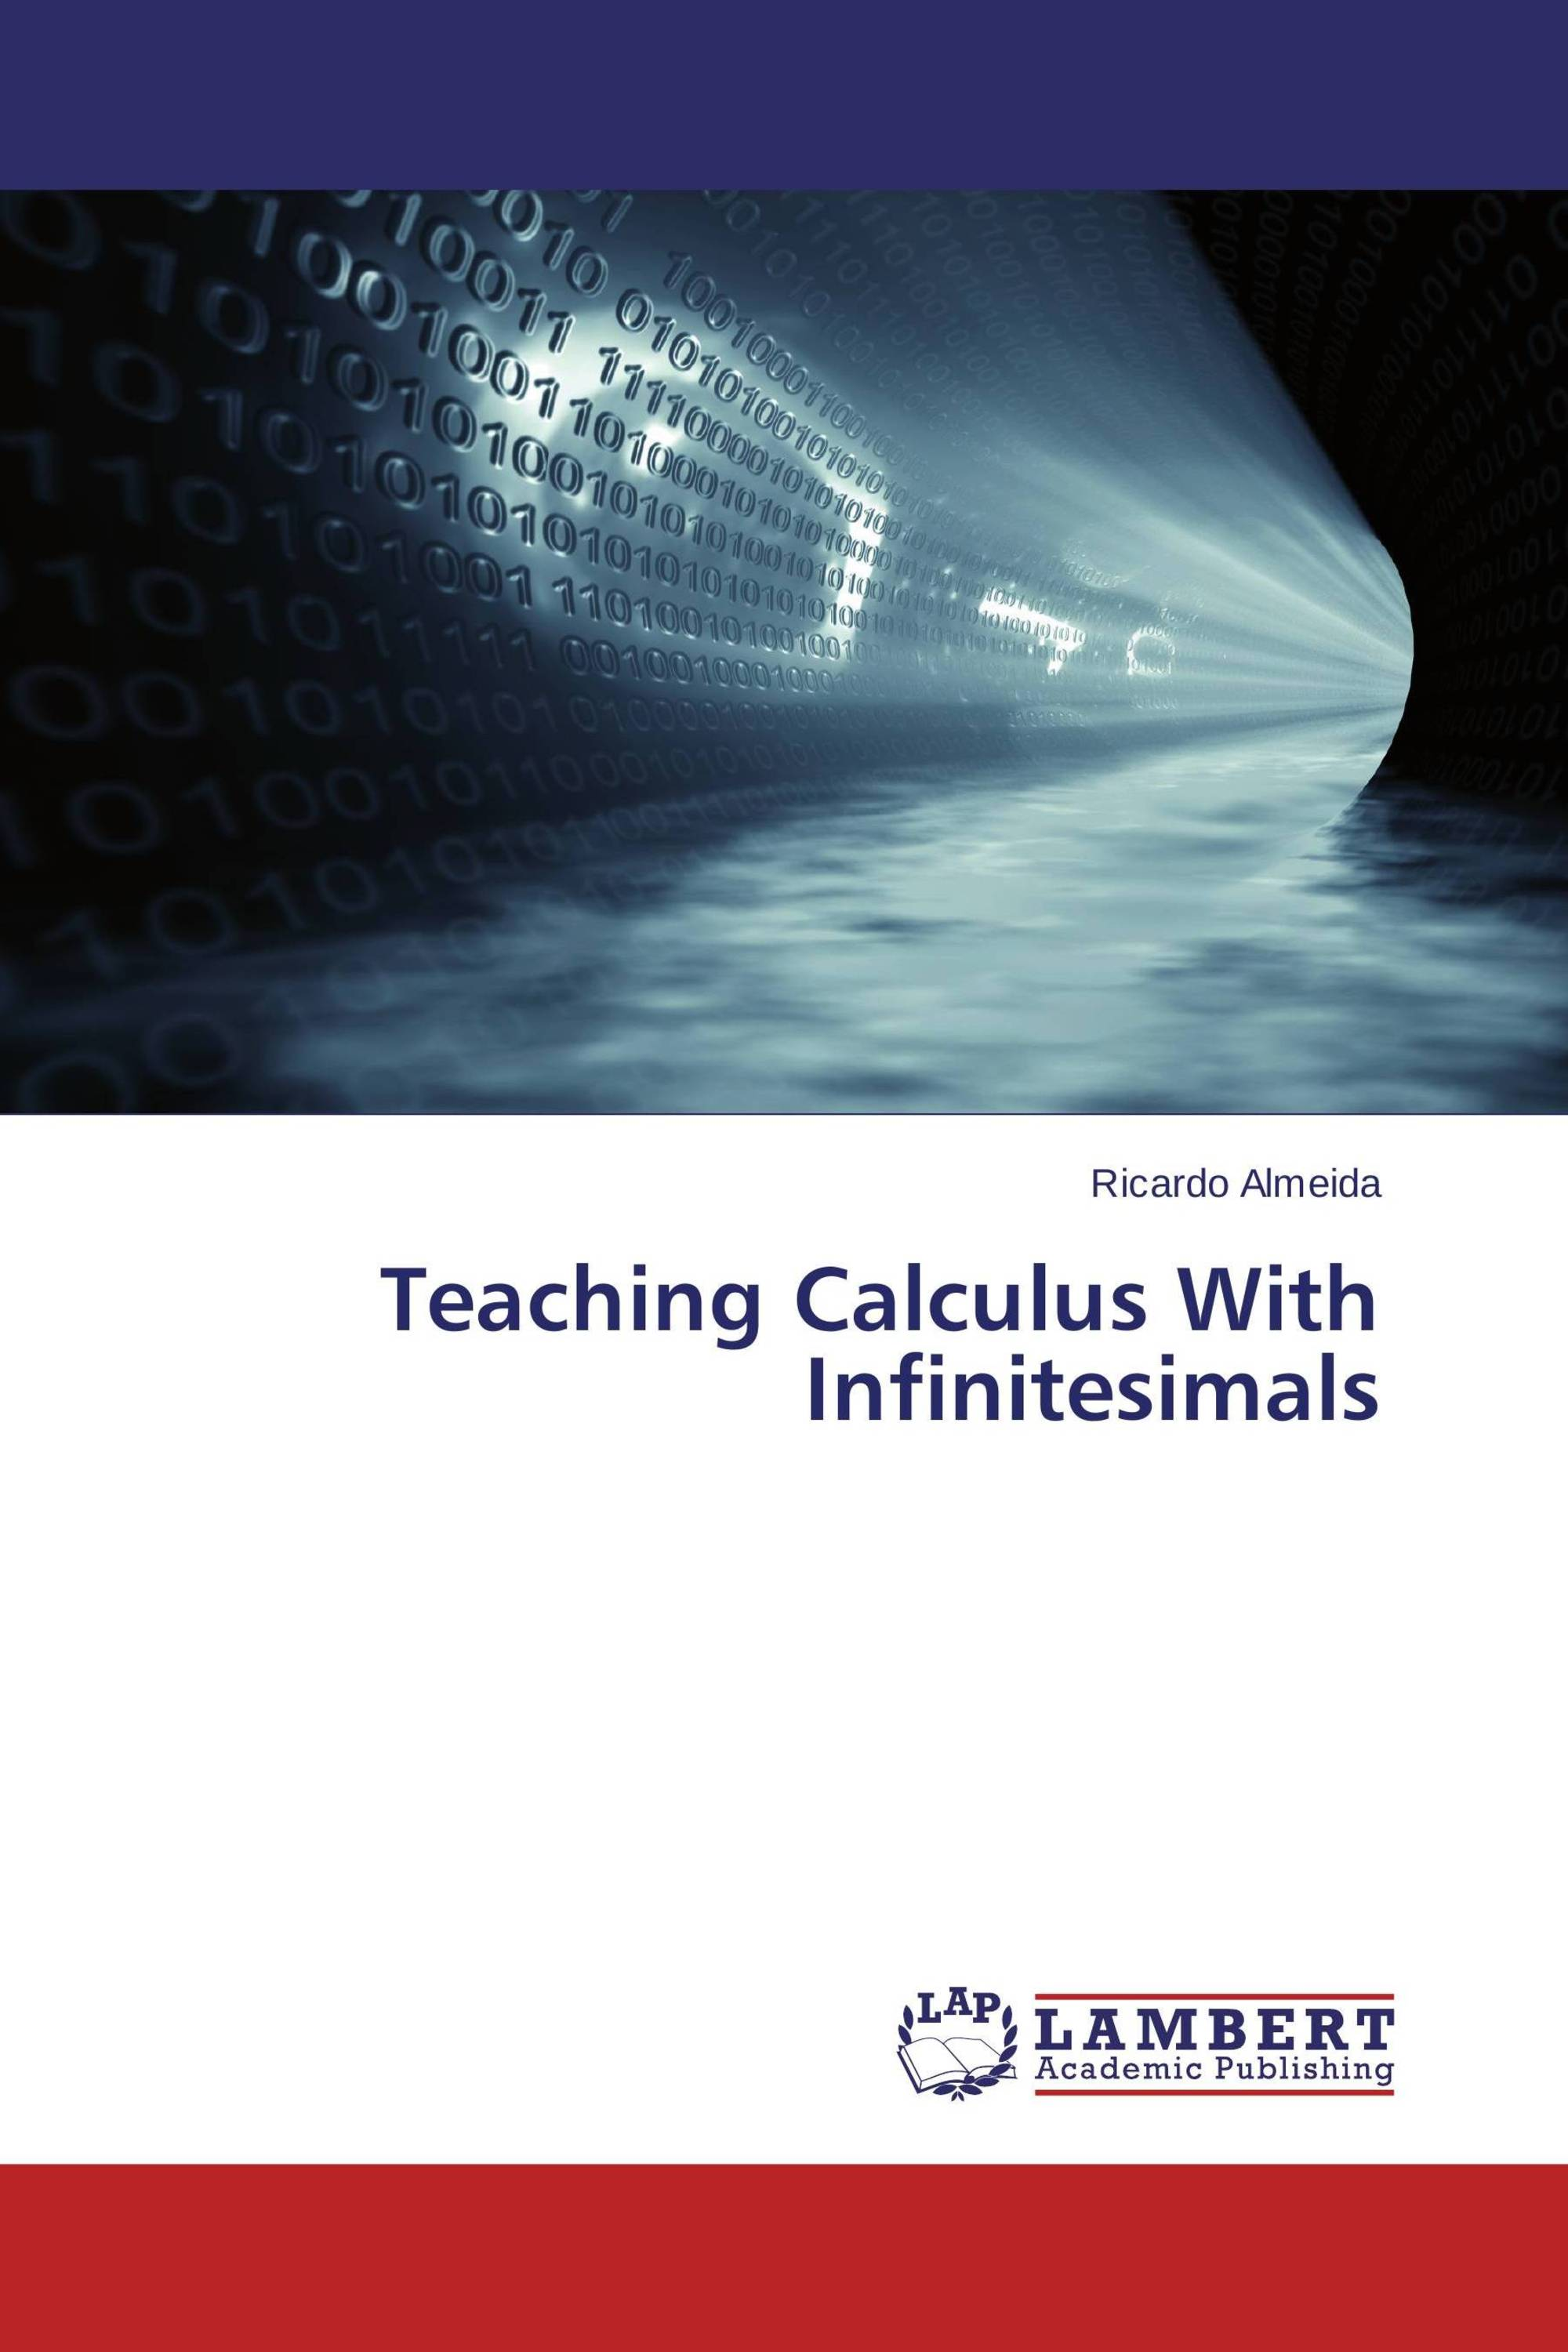 Teaching Calculus With Infinitesimals